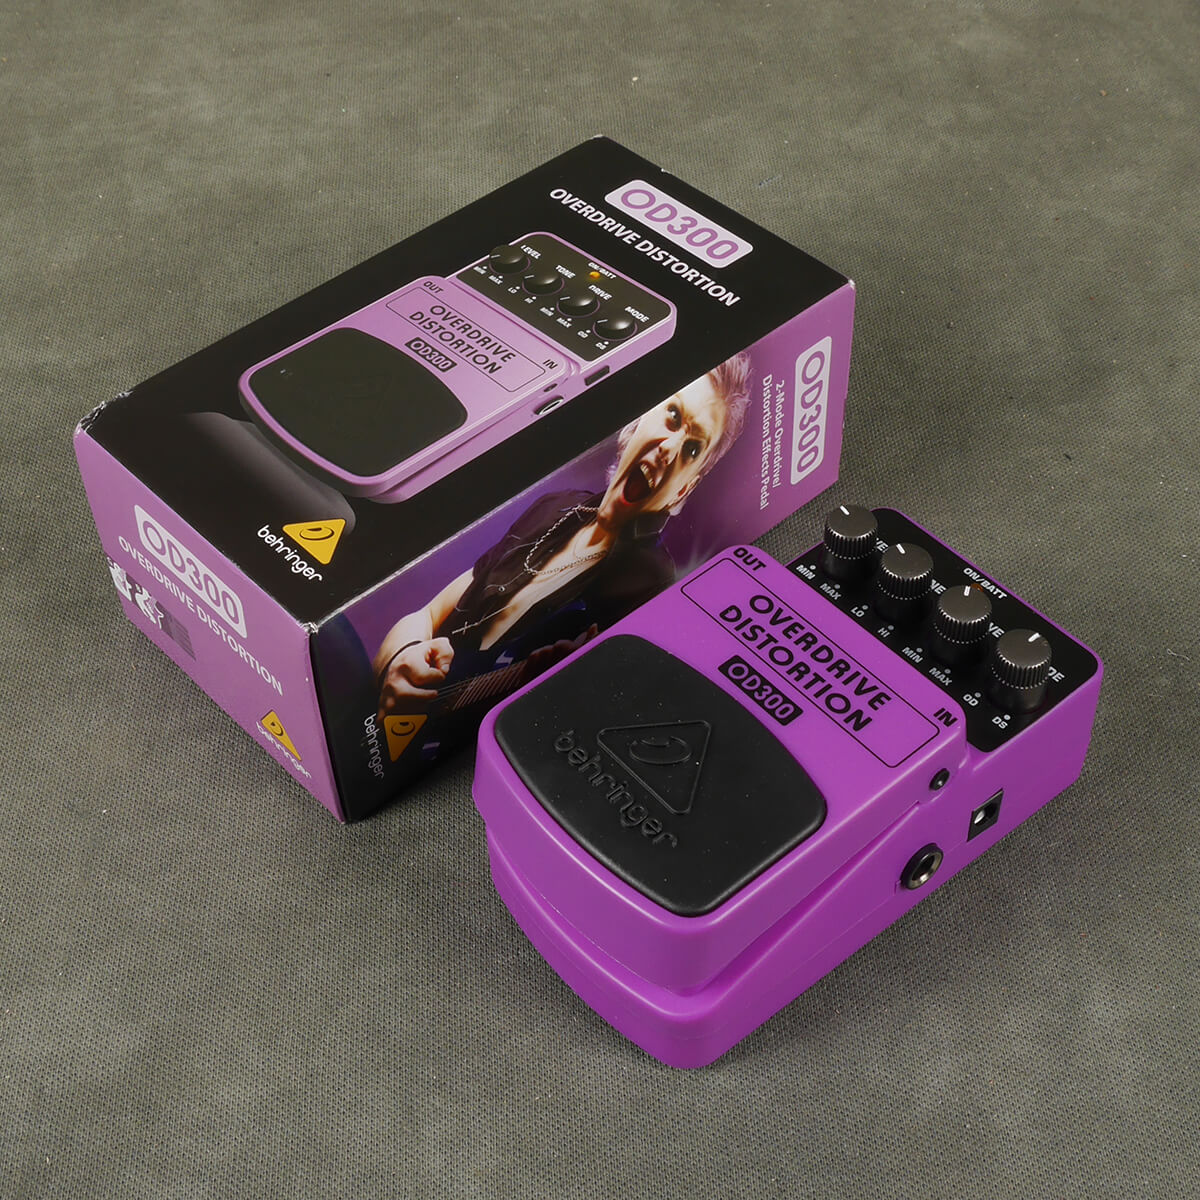 Behringer OD300 Overdrive Distortion FX Pedal w/Box - 2nd Hand